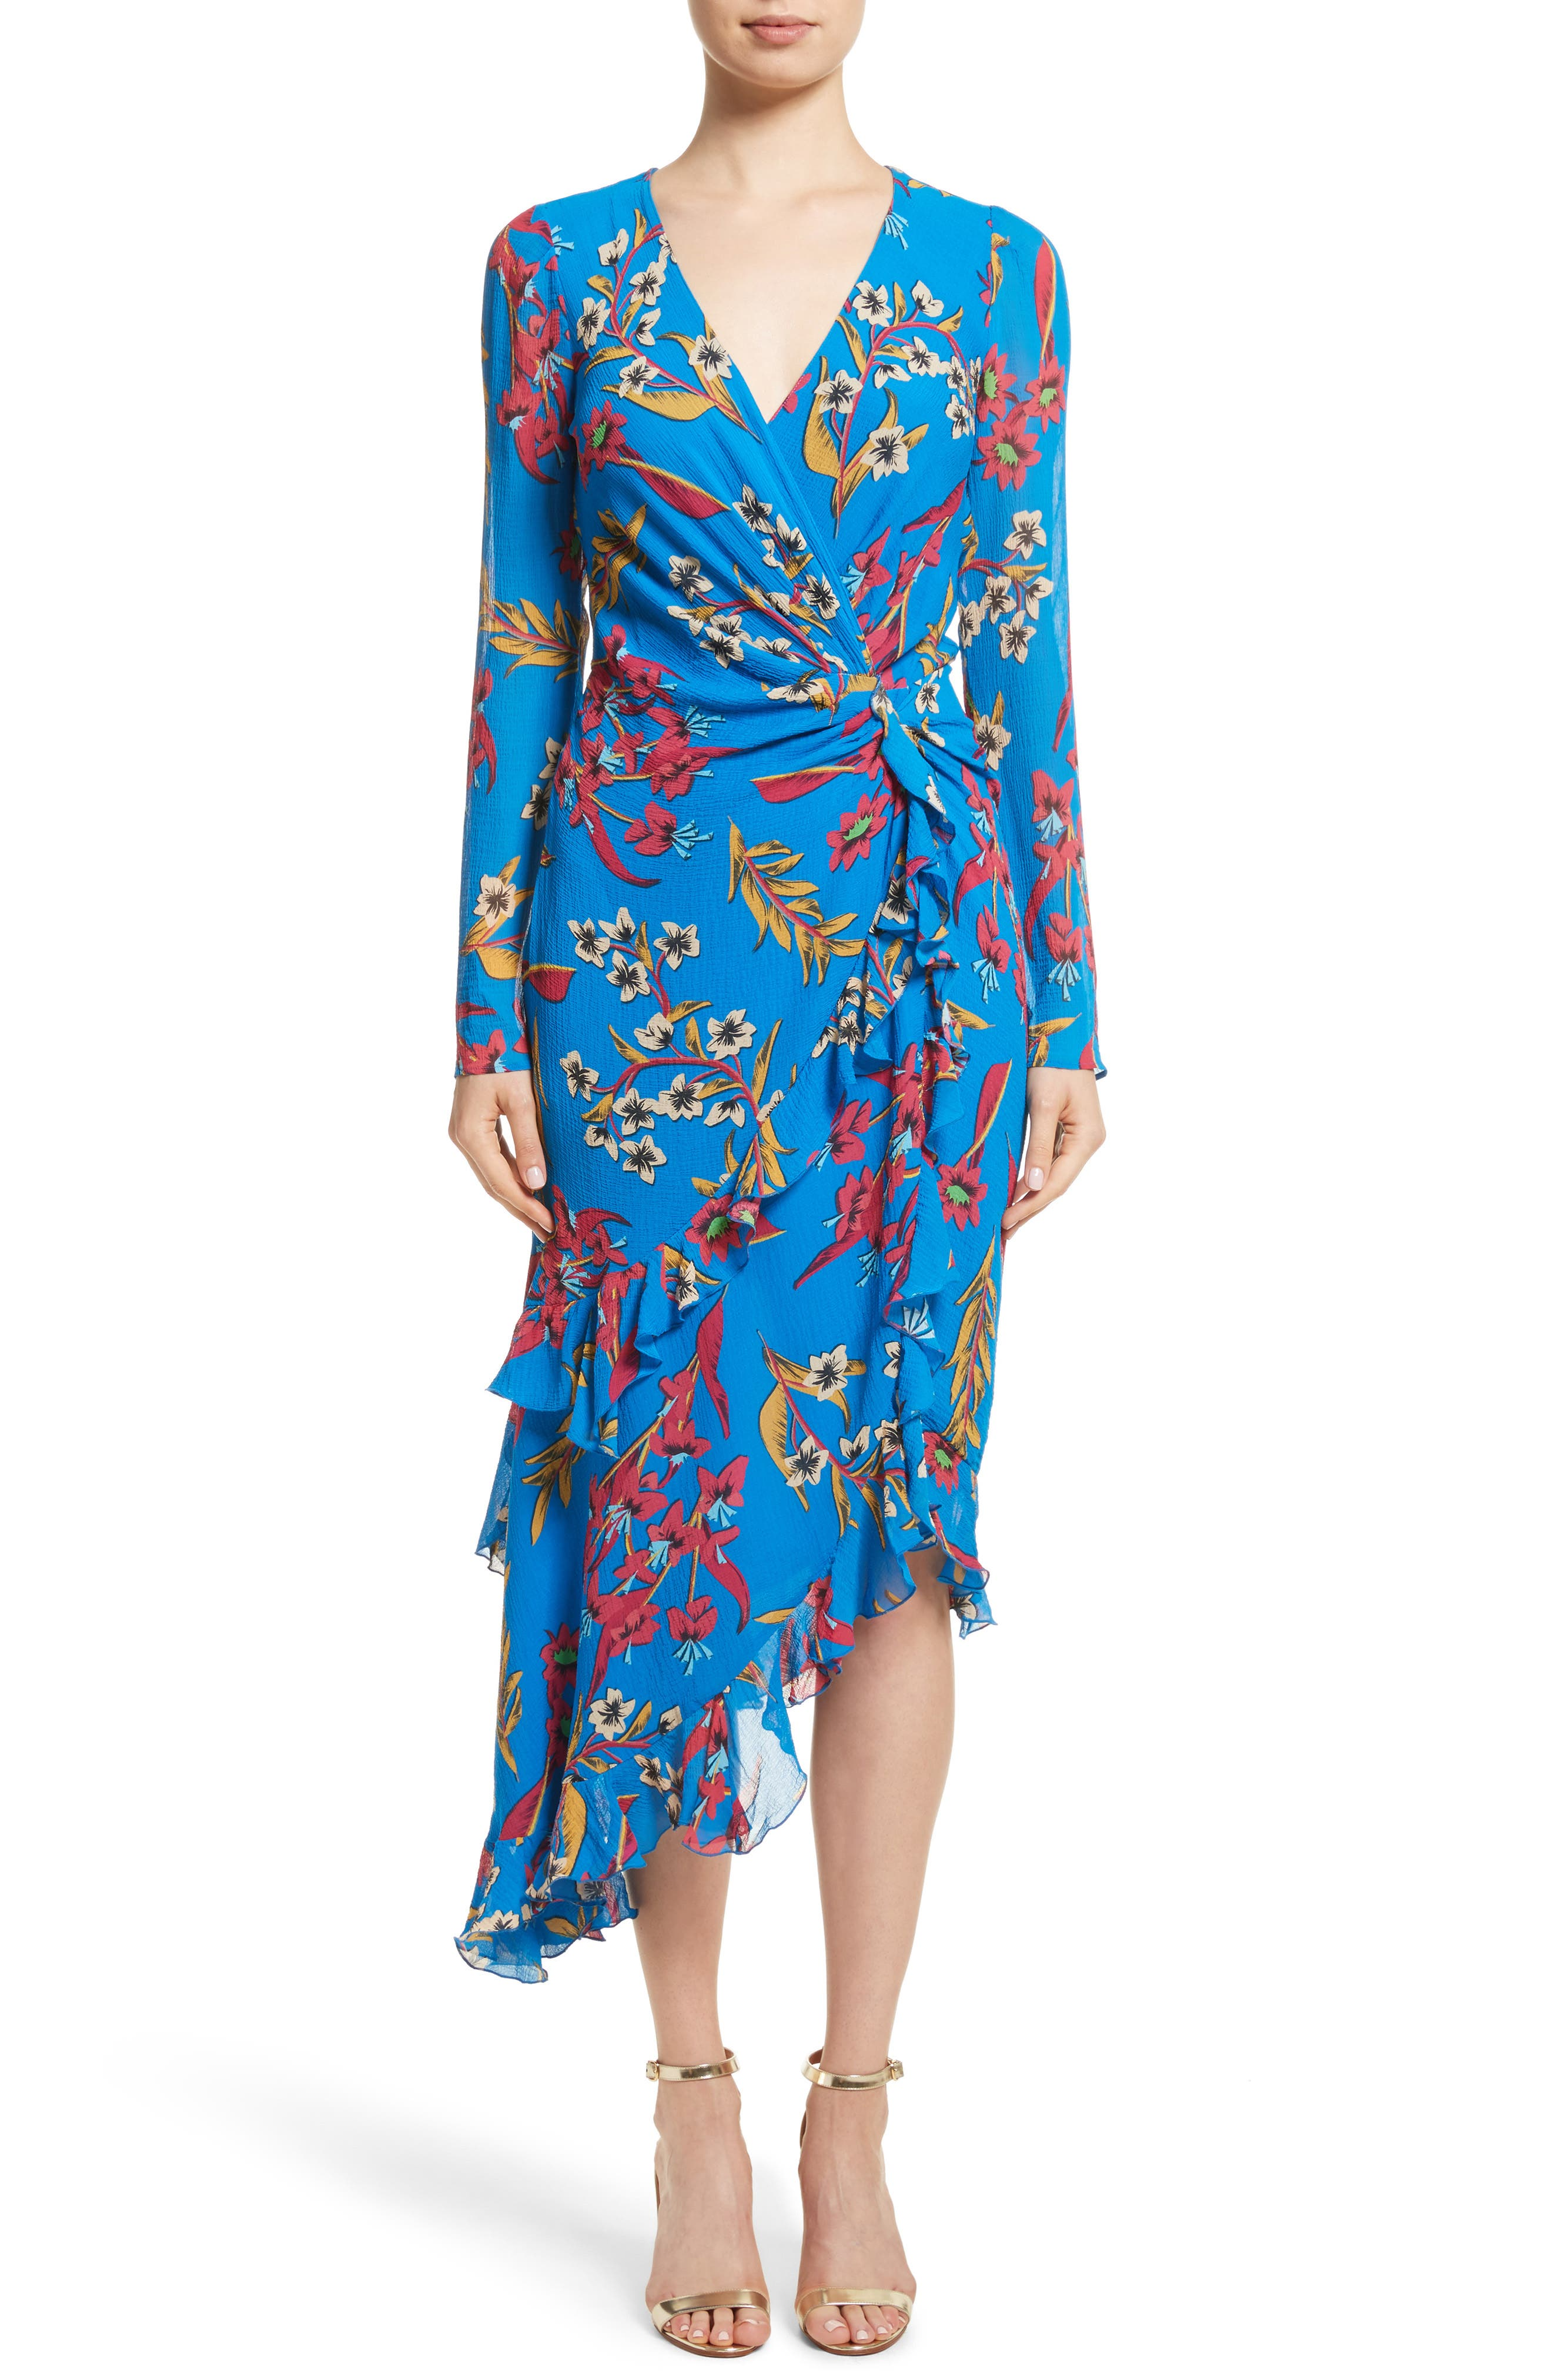 Alternate Image 1 Selected - Etro Jungle Floral Print Asymmetrical Ruffle Dress